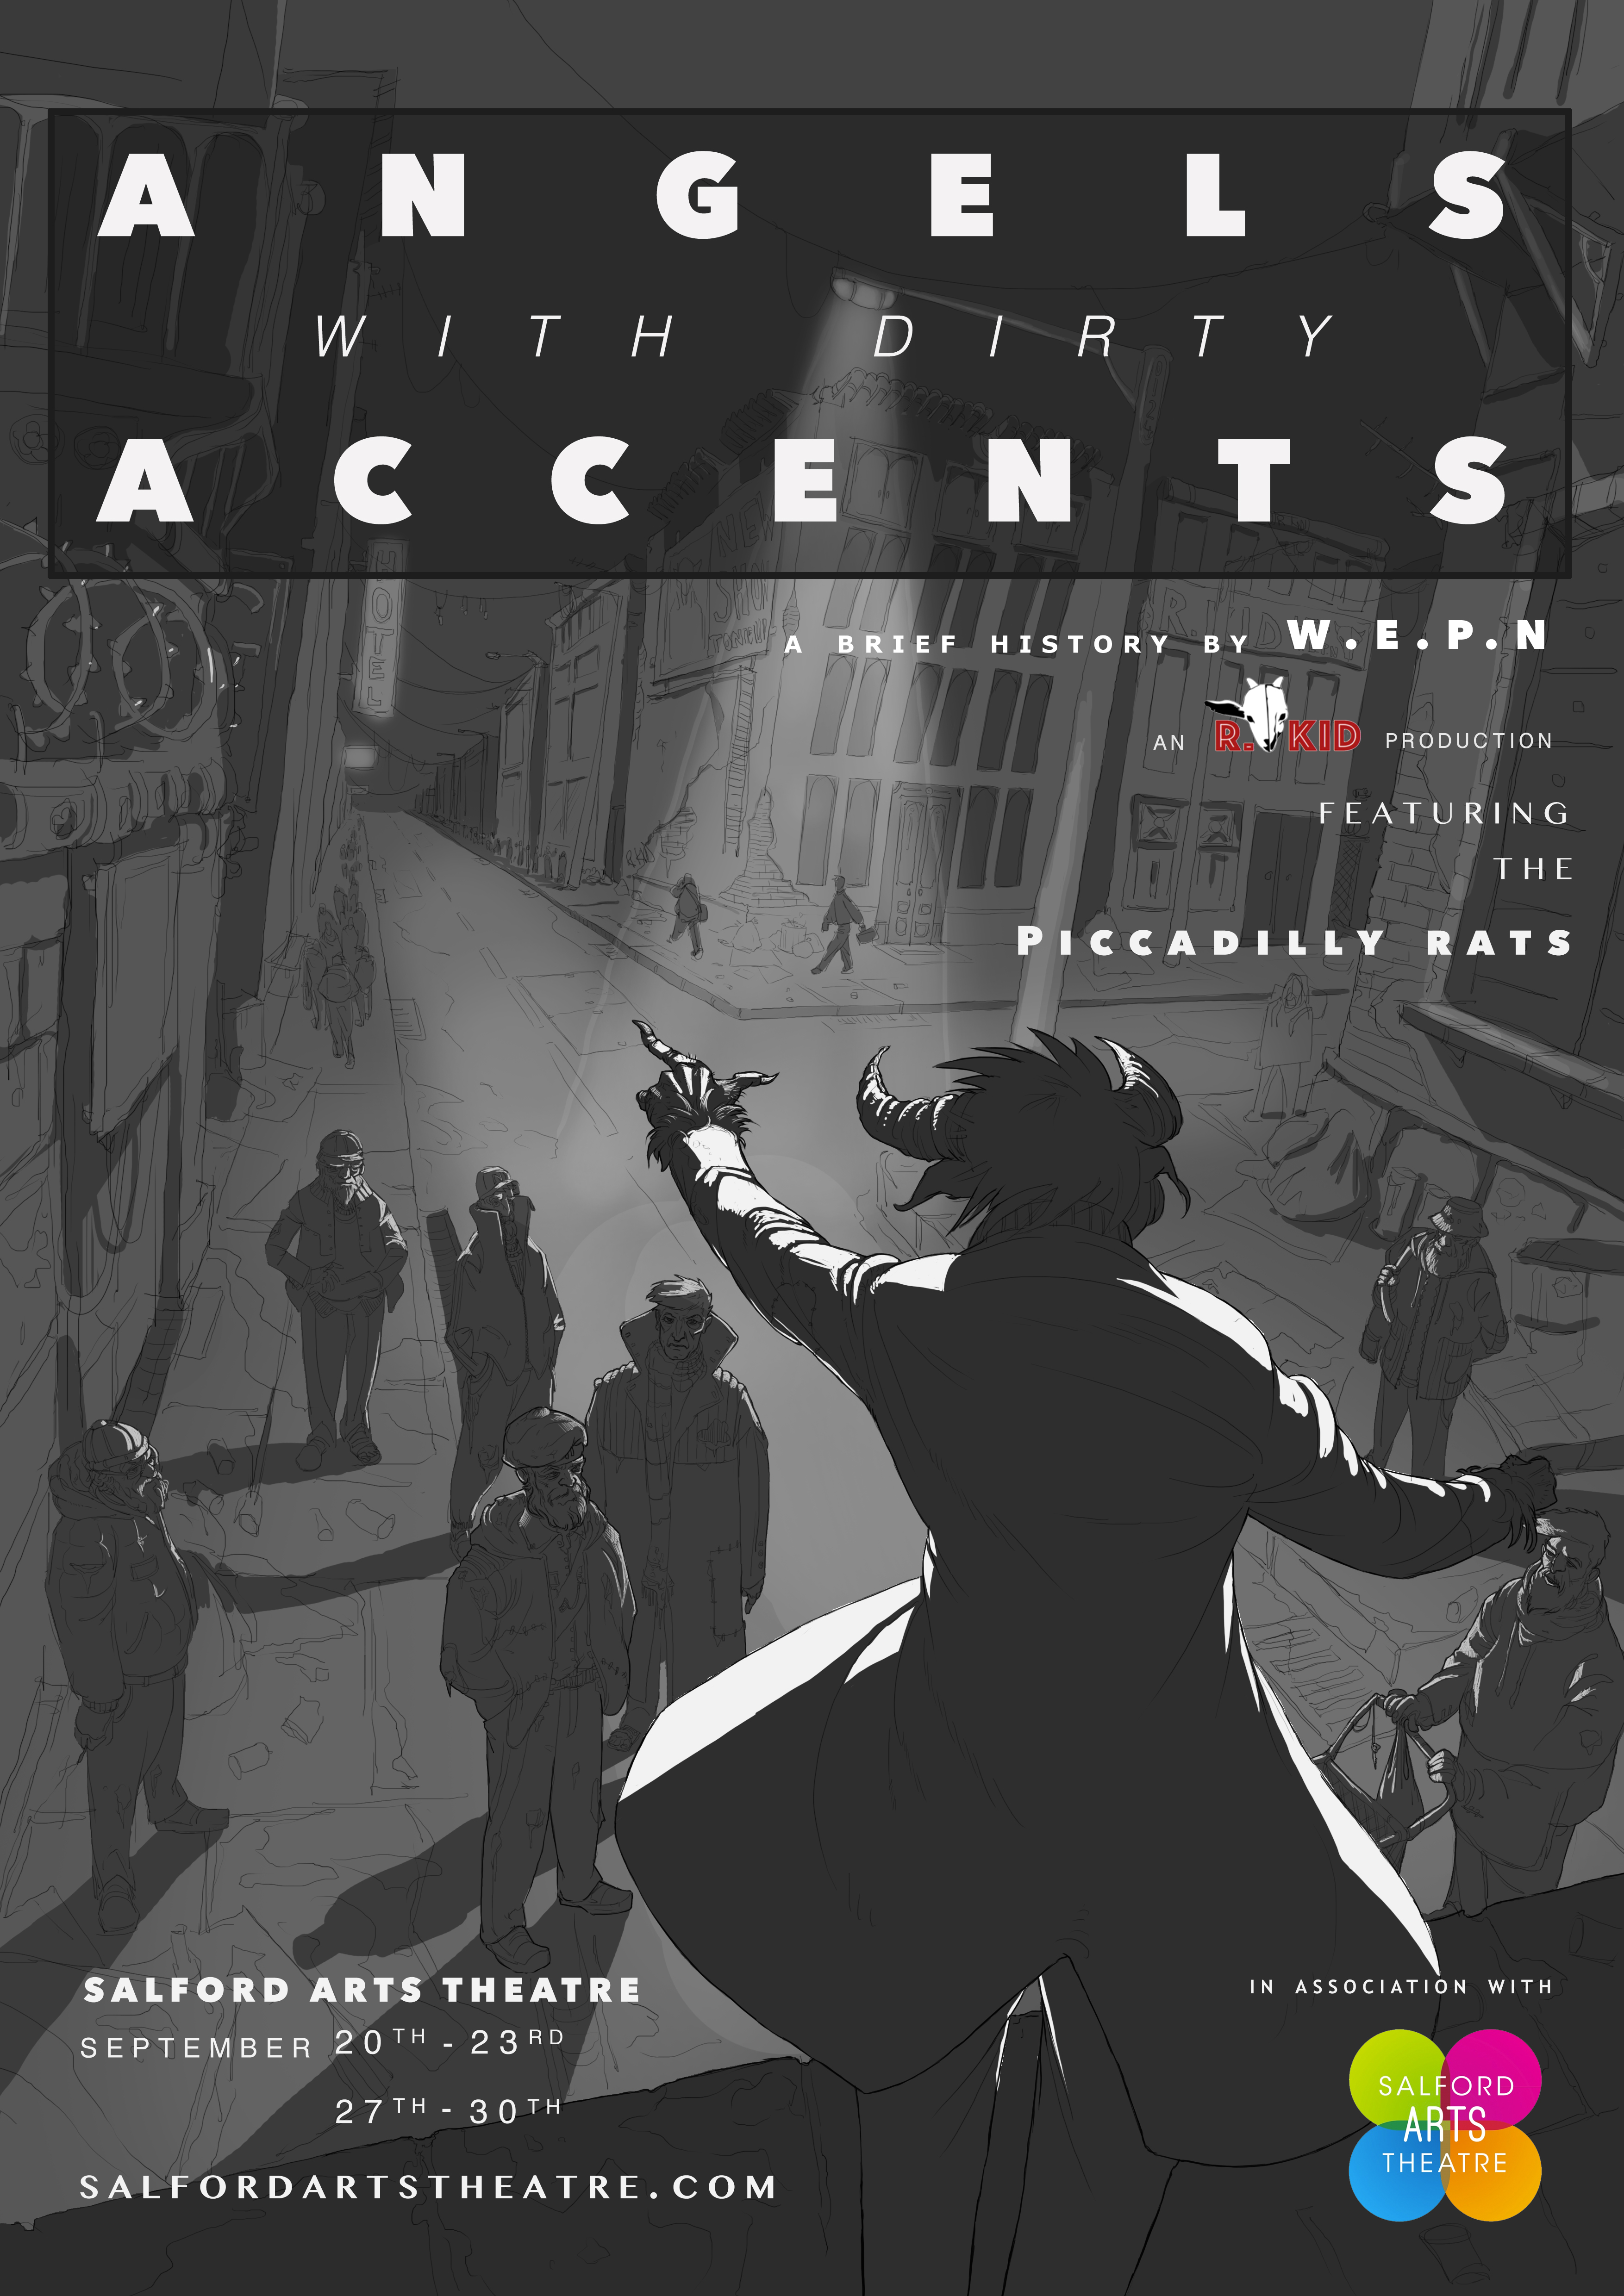 ANGELS WITH DIRTY ACCENTS | R.KID PRODUCTIONS